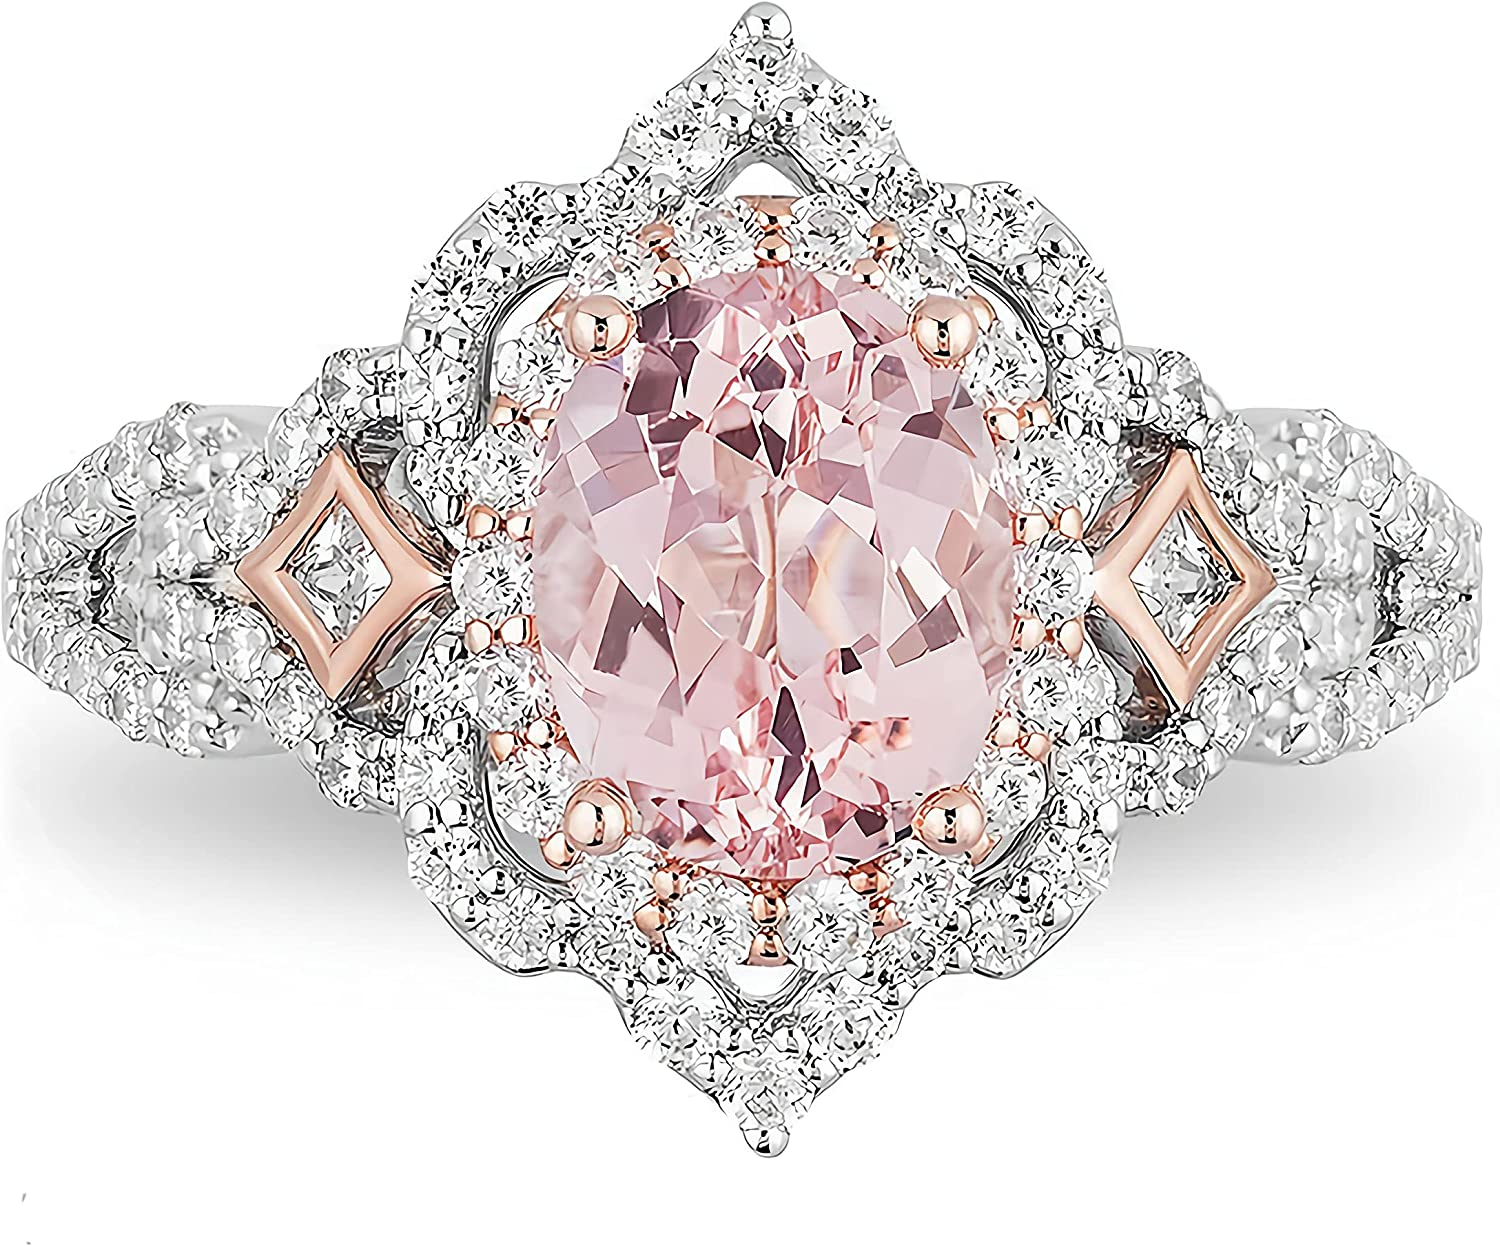 2 Carat ctw Morganite Moissanite women Purchase for engagement 10 rings Max 41% OFF